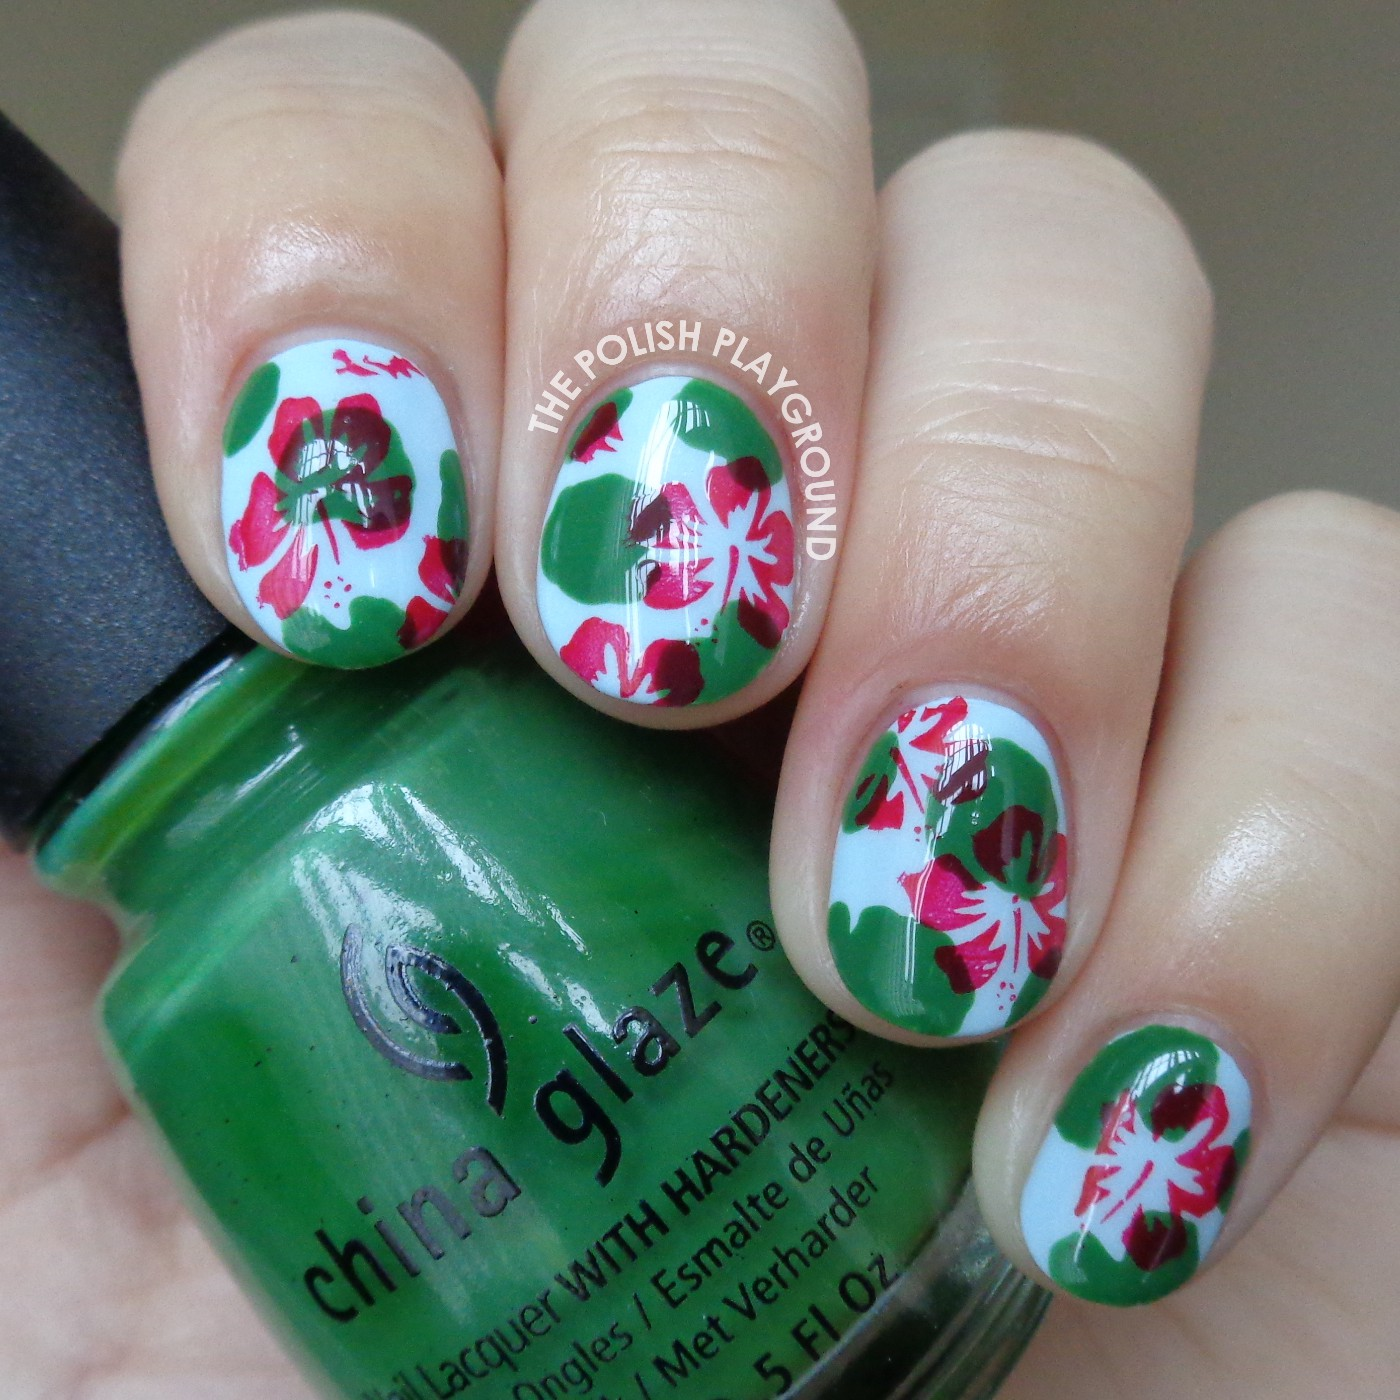 Pond Manicure with Lily Pads and Floral Stamping Nail Art